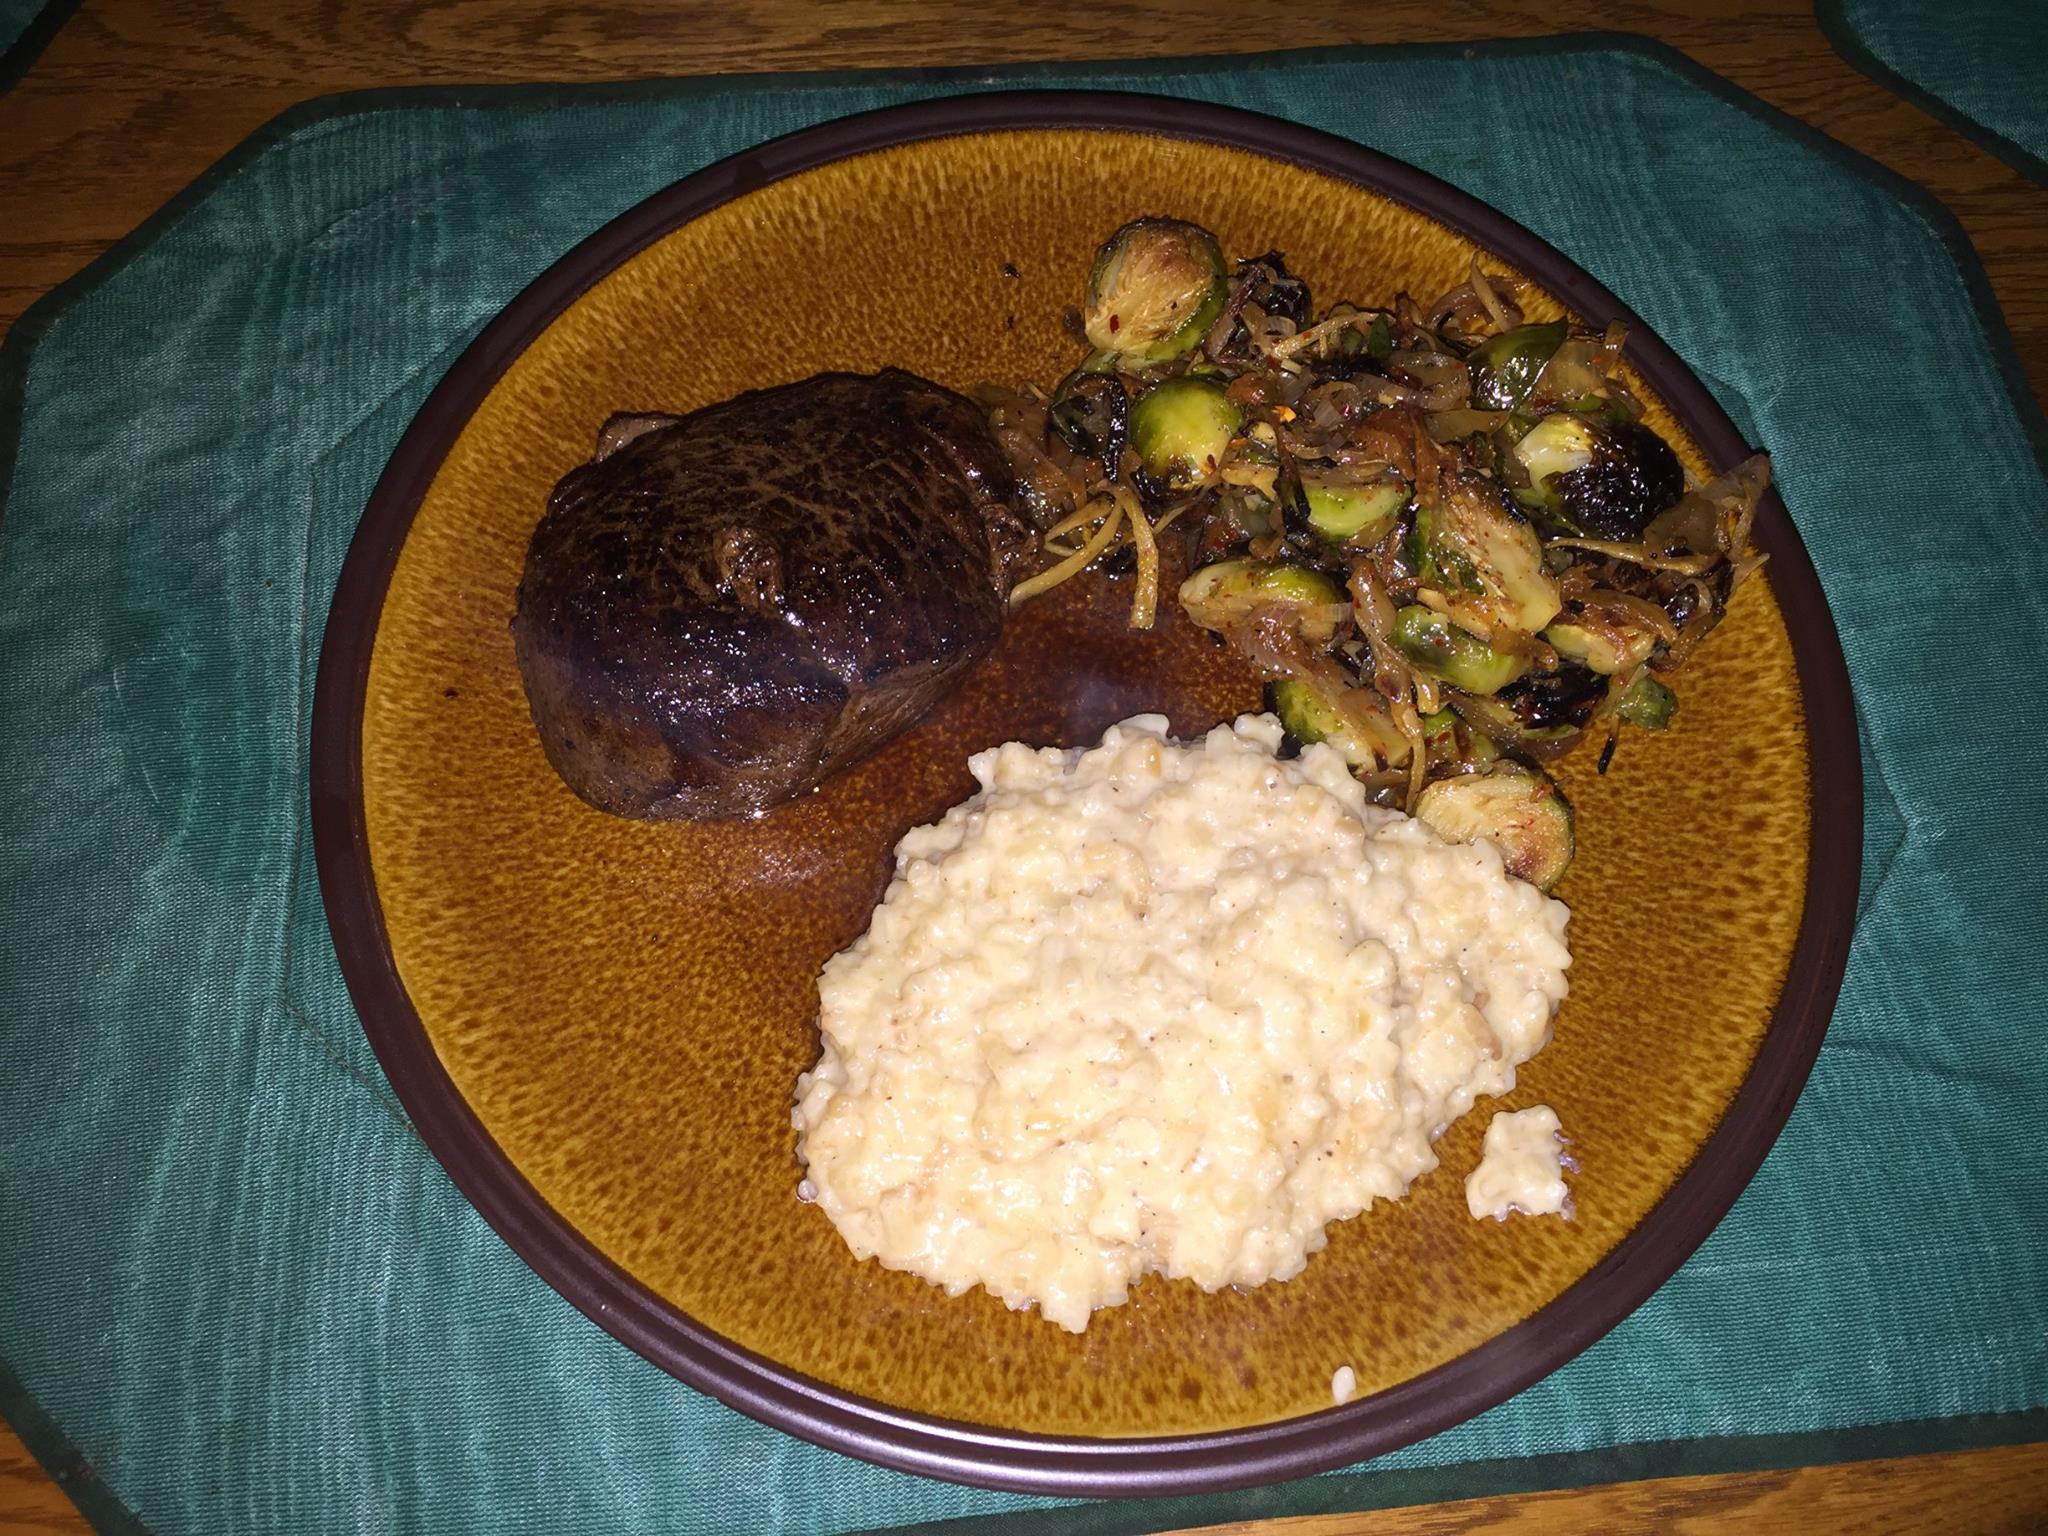 Tonight's risotto, charred brussel sprouts…